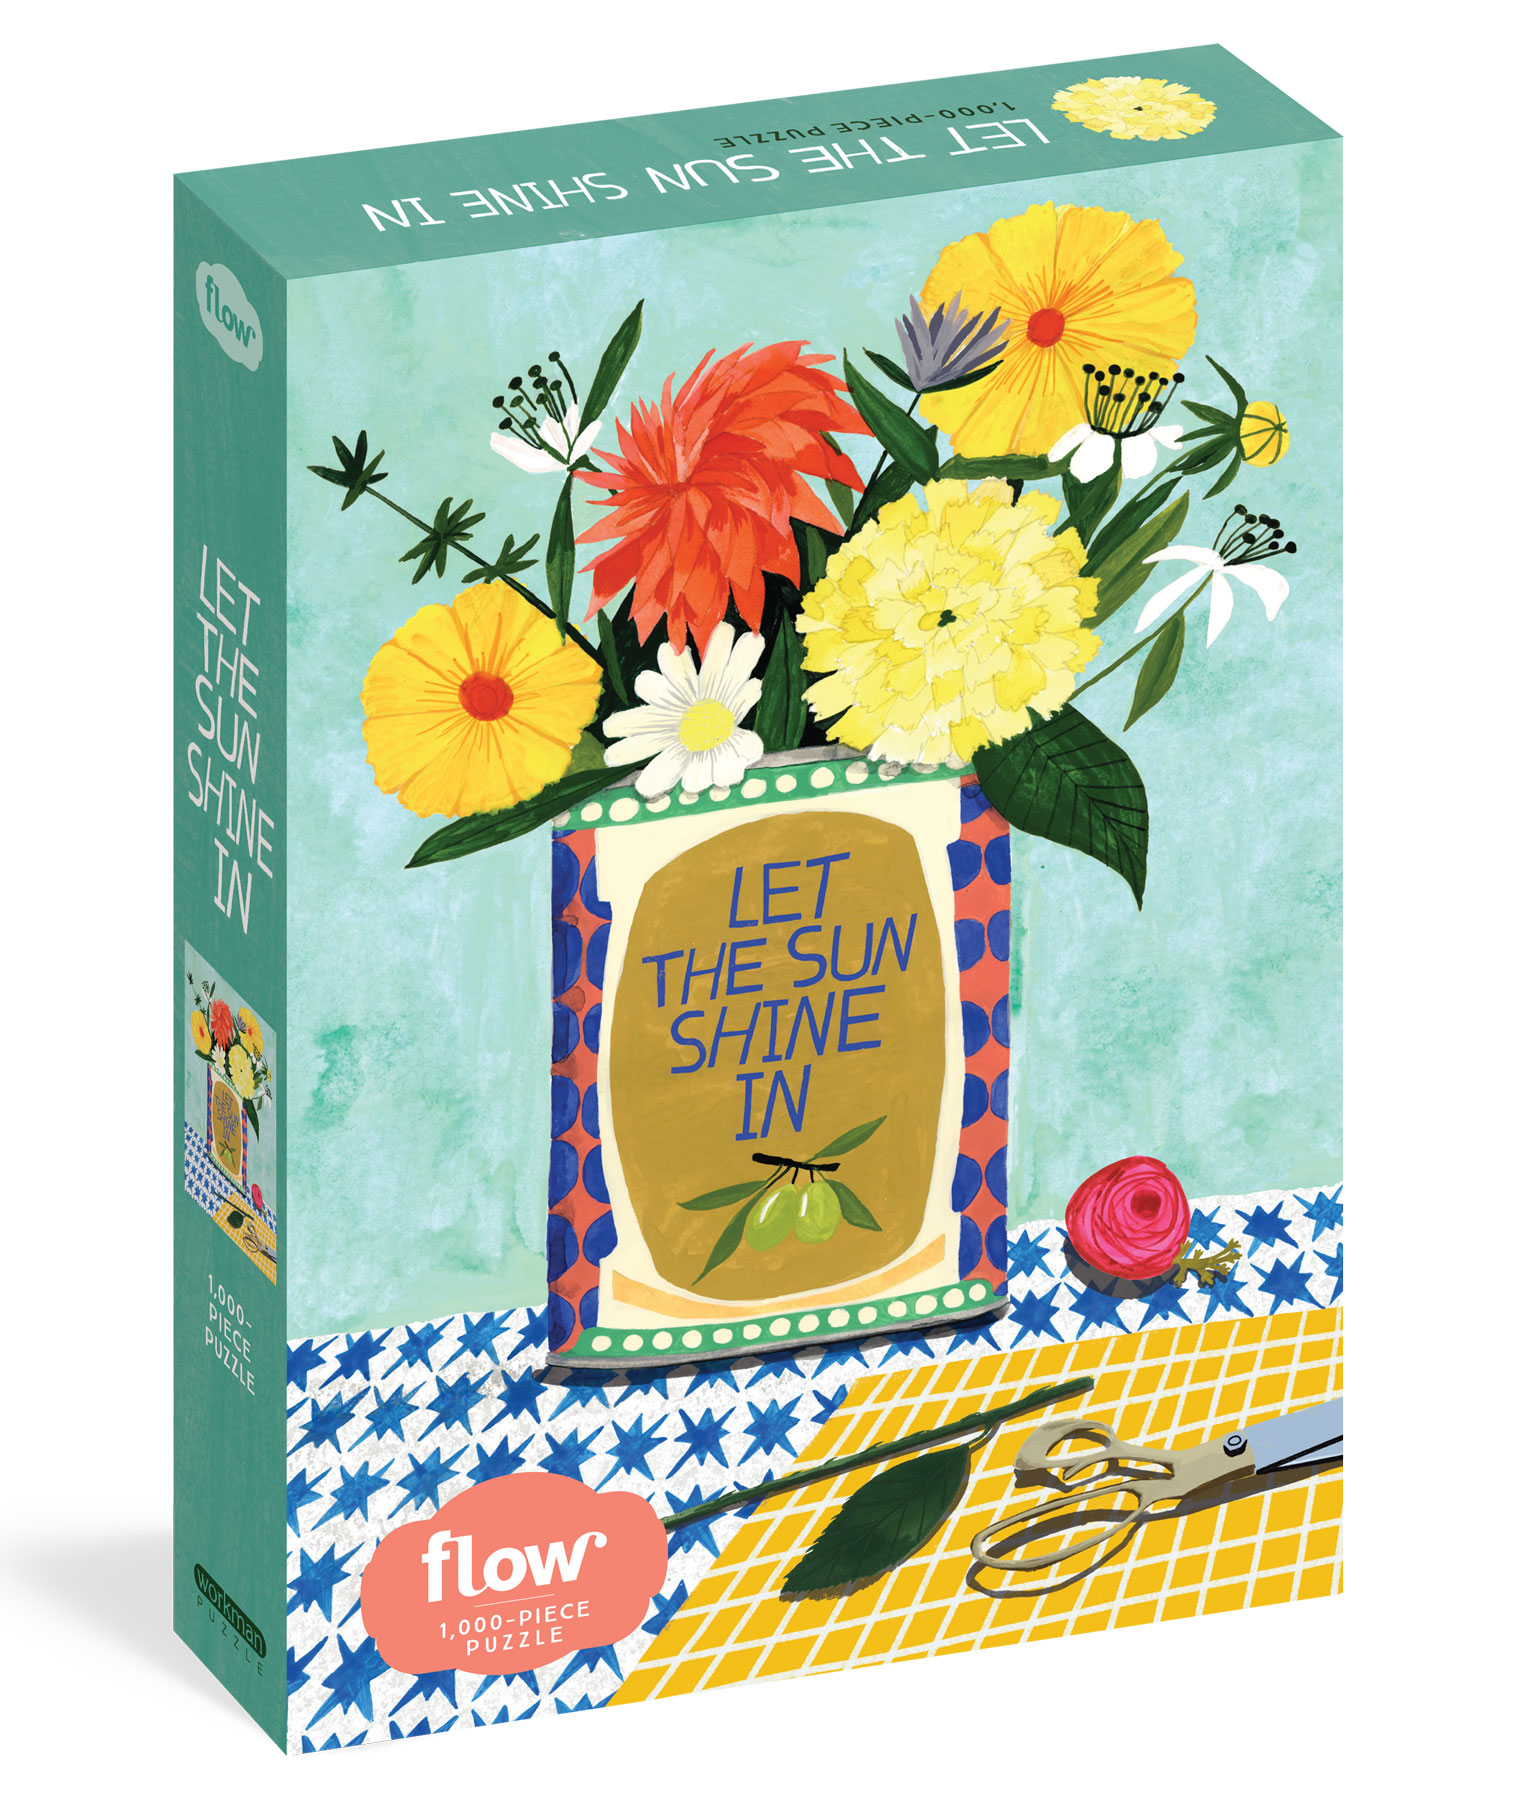 Best gifts for sisters - Let the Sun Shine In 1,000-Piece Puzzle